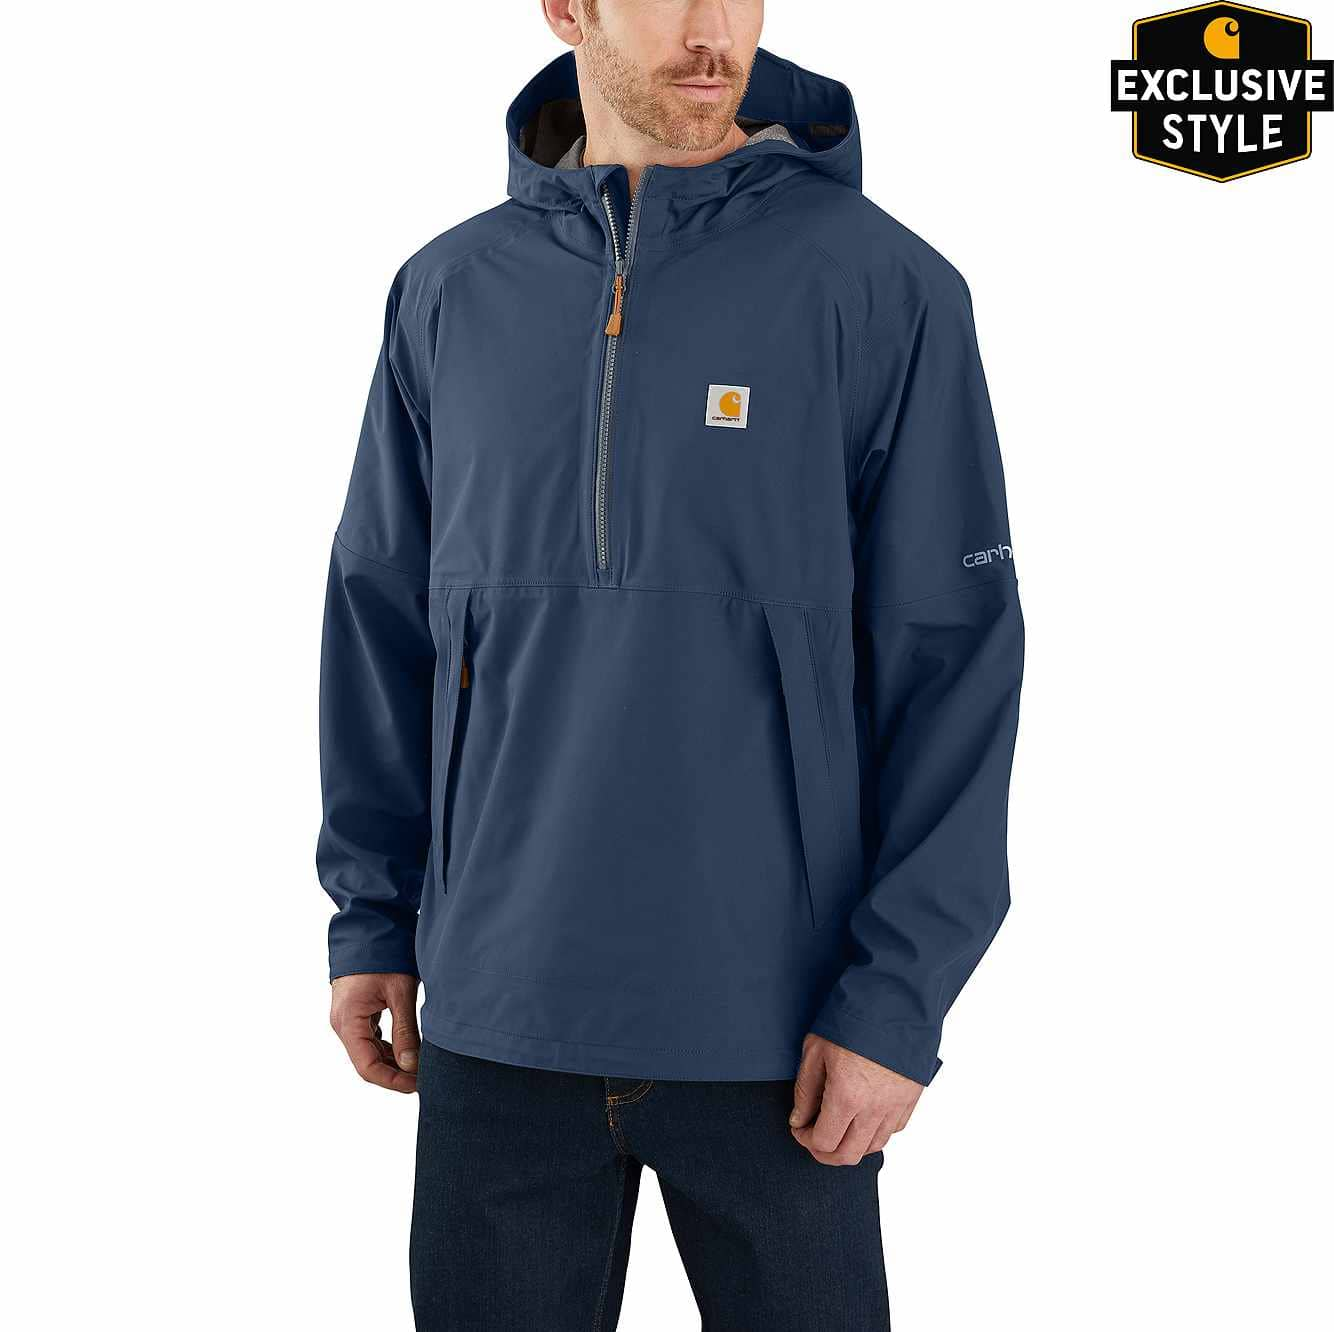 Picture of Storm Defender® Jersey-Lined Hooded Anorak in Dark Blue